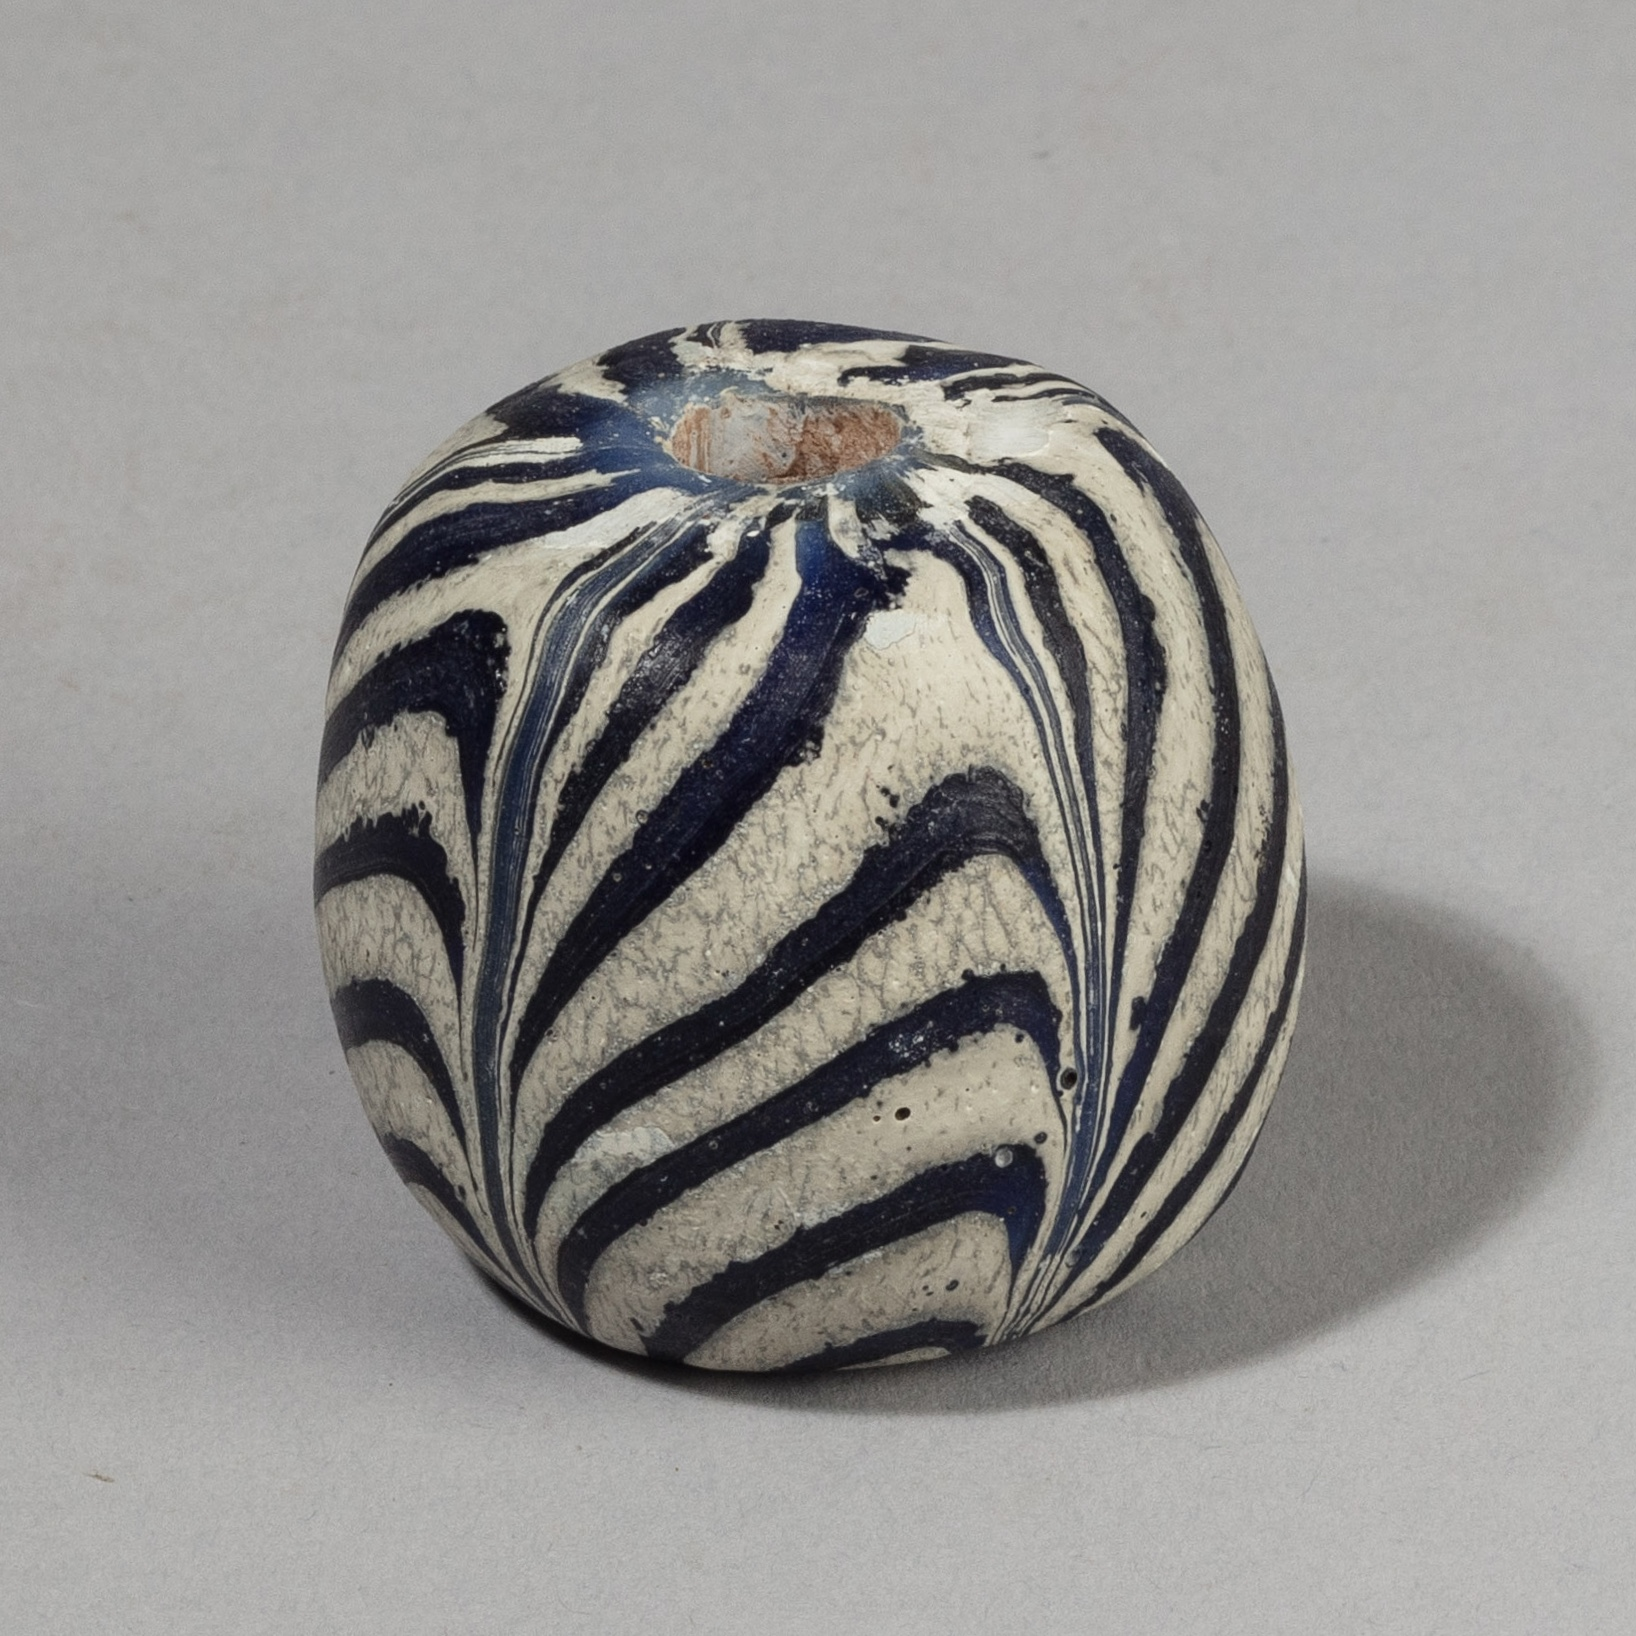 SOLD POP UP A LARGE GLASS BEAD FROM JAVA, INDONESIA ( No 4370)